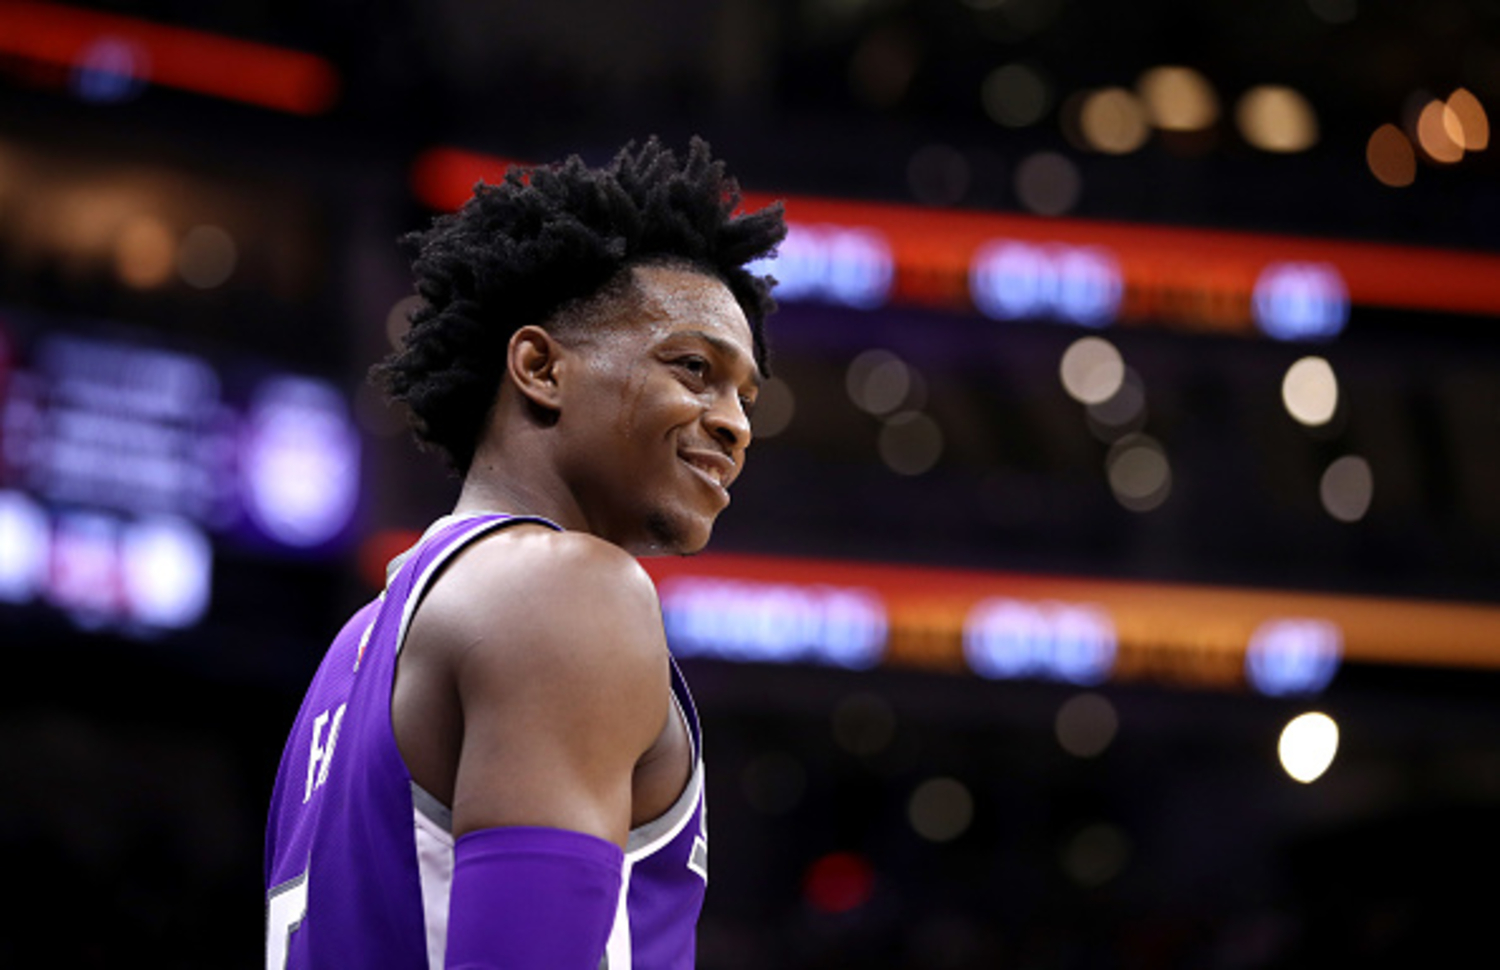 The Sacramento Kings Just Rewarded Their Star Guard a With Massive $163 Million Payday